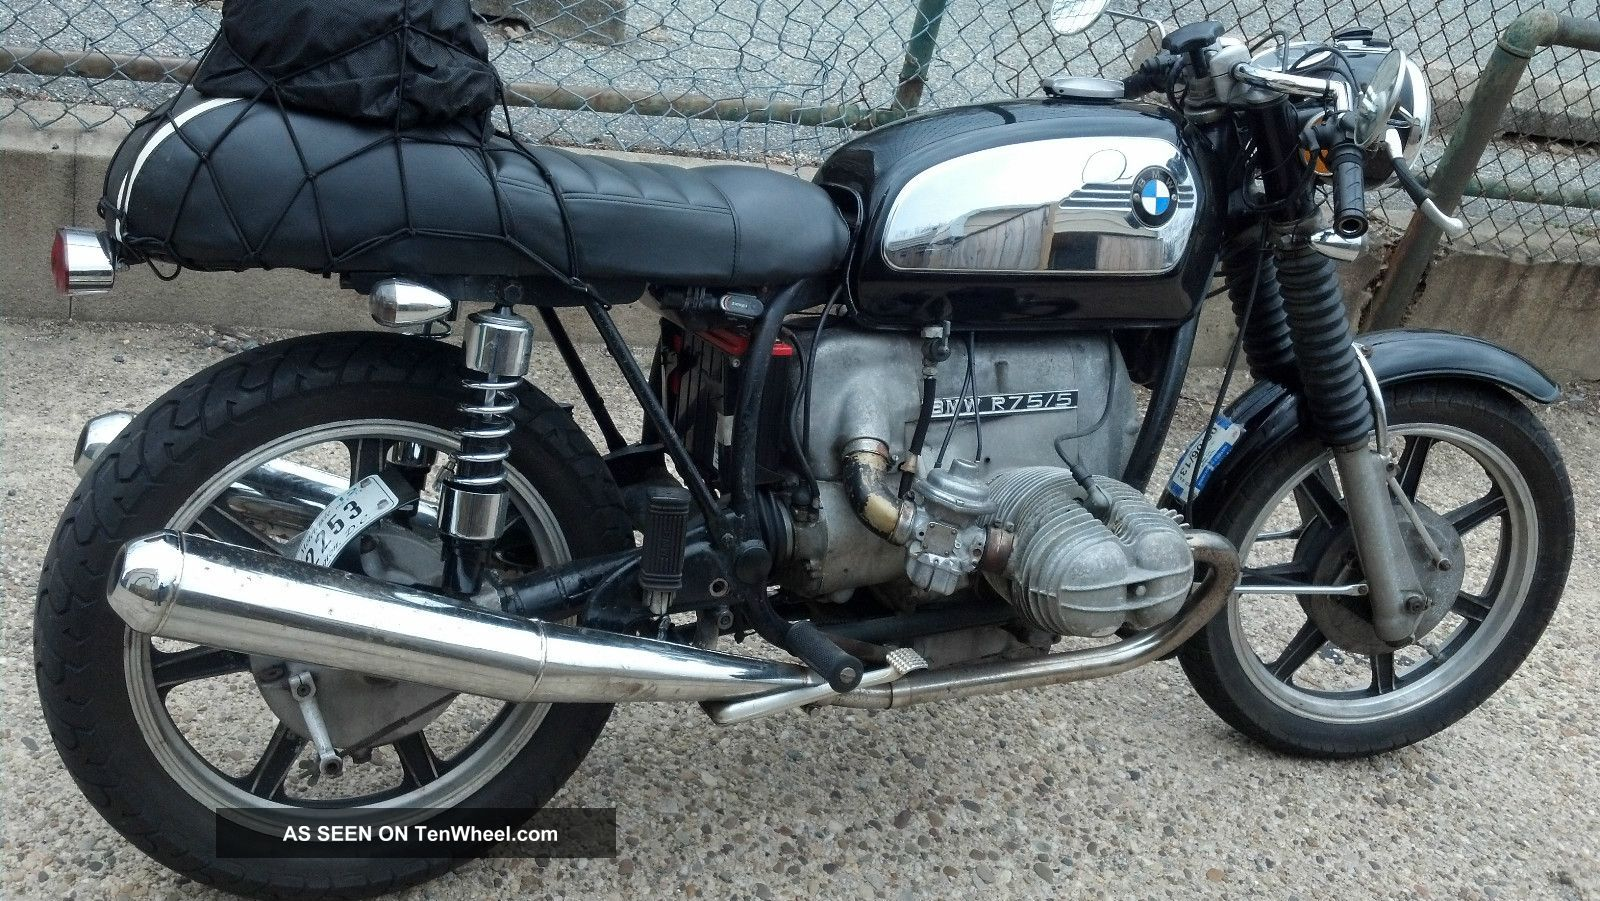 1973 Bmw Cafe Racer 75 / 5 Lwb R-Series photo